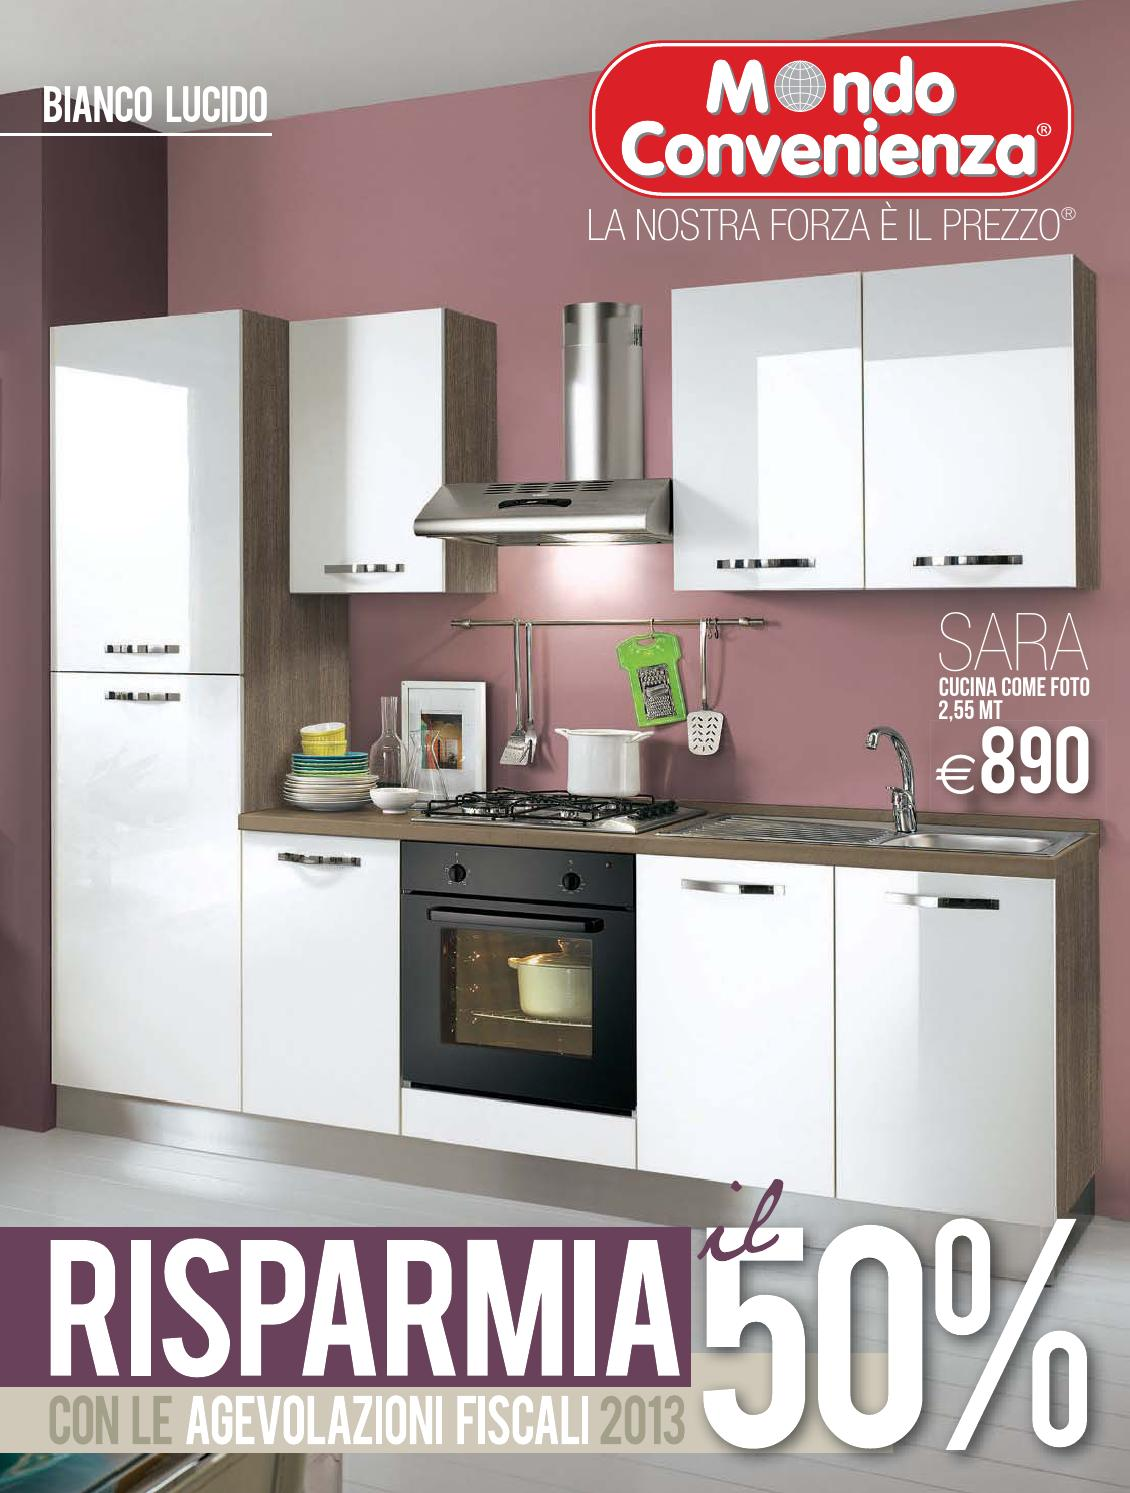 Mondo convenienza catalogo autunno 2013 by mobilpro issuu - Cucine outlet mondo convenienza roma ...